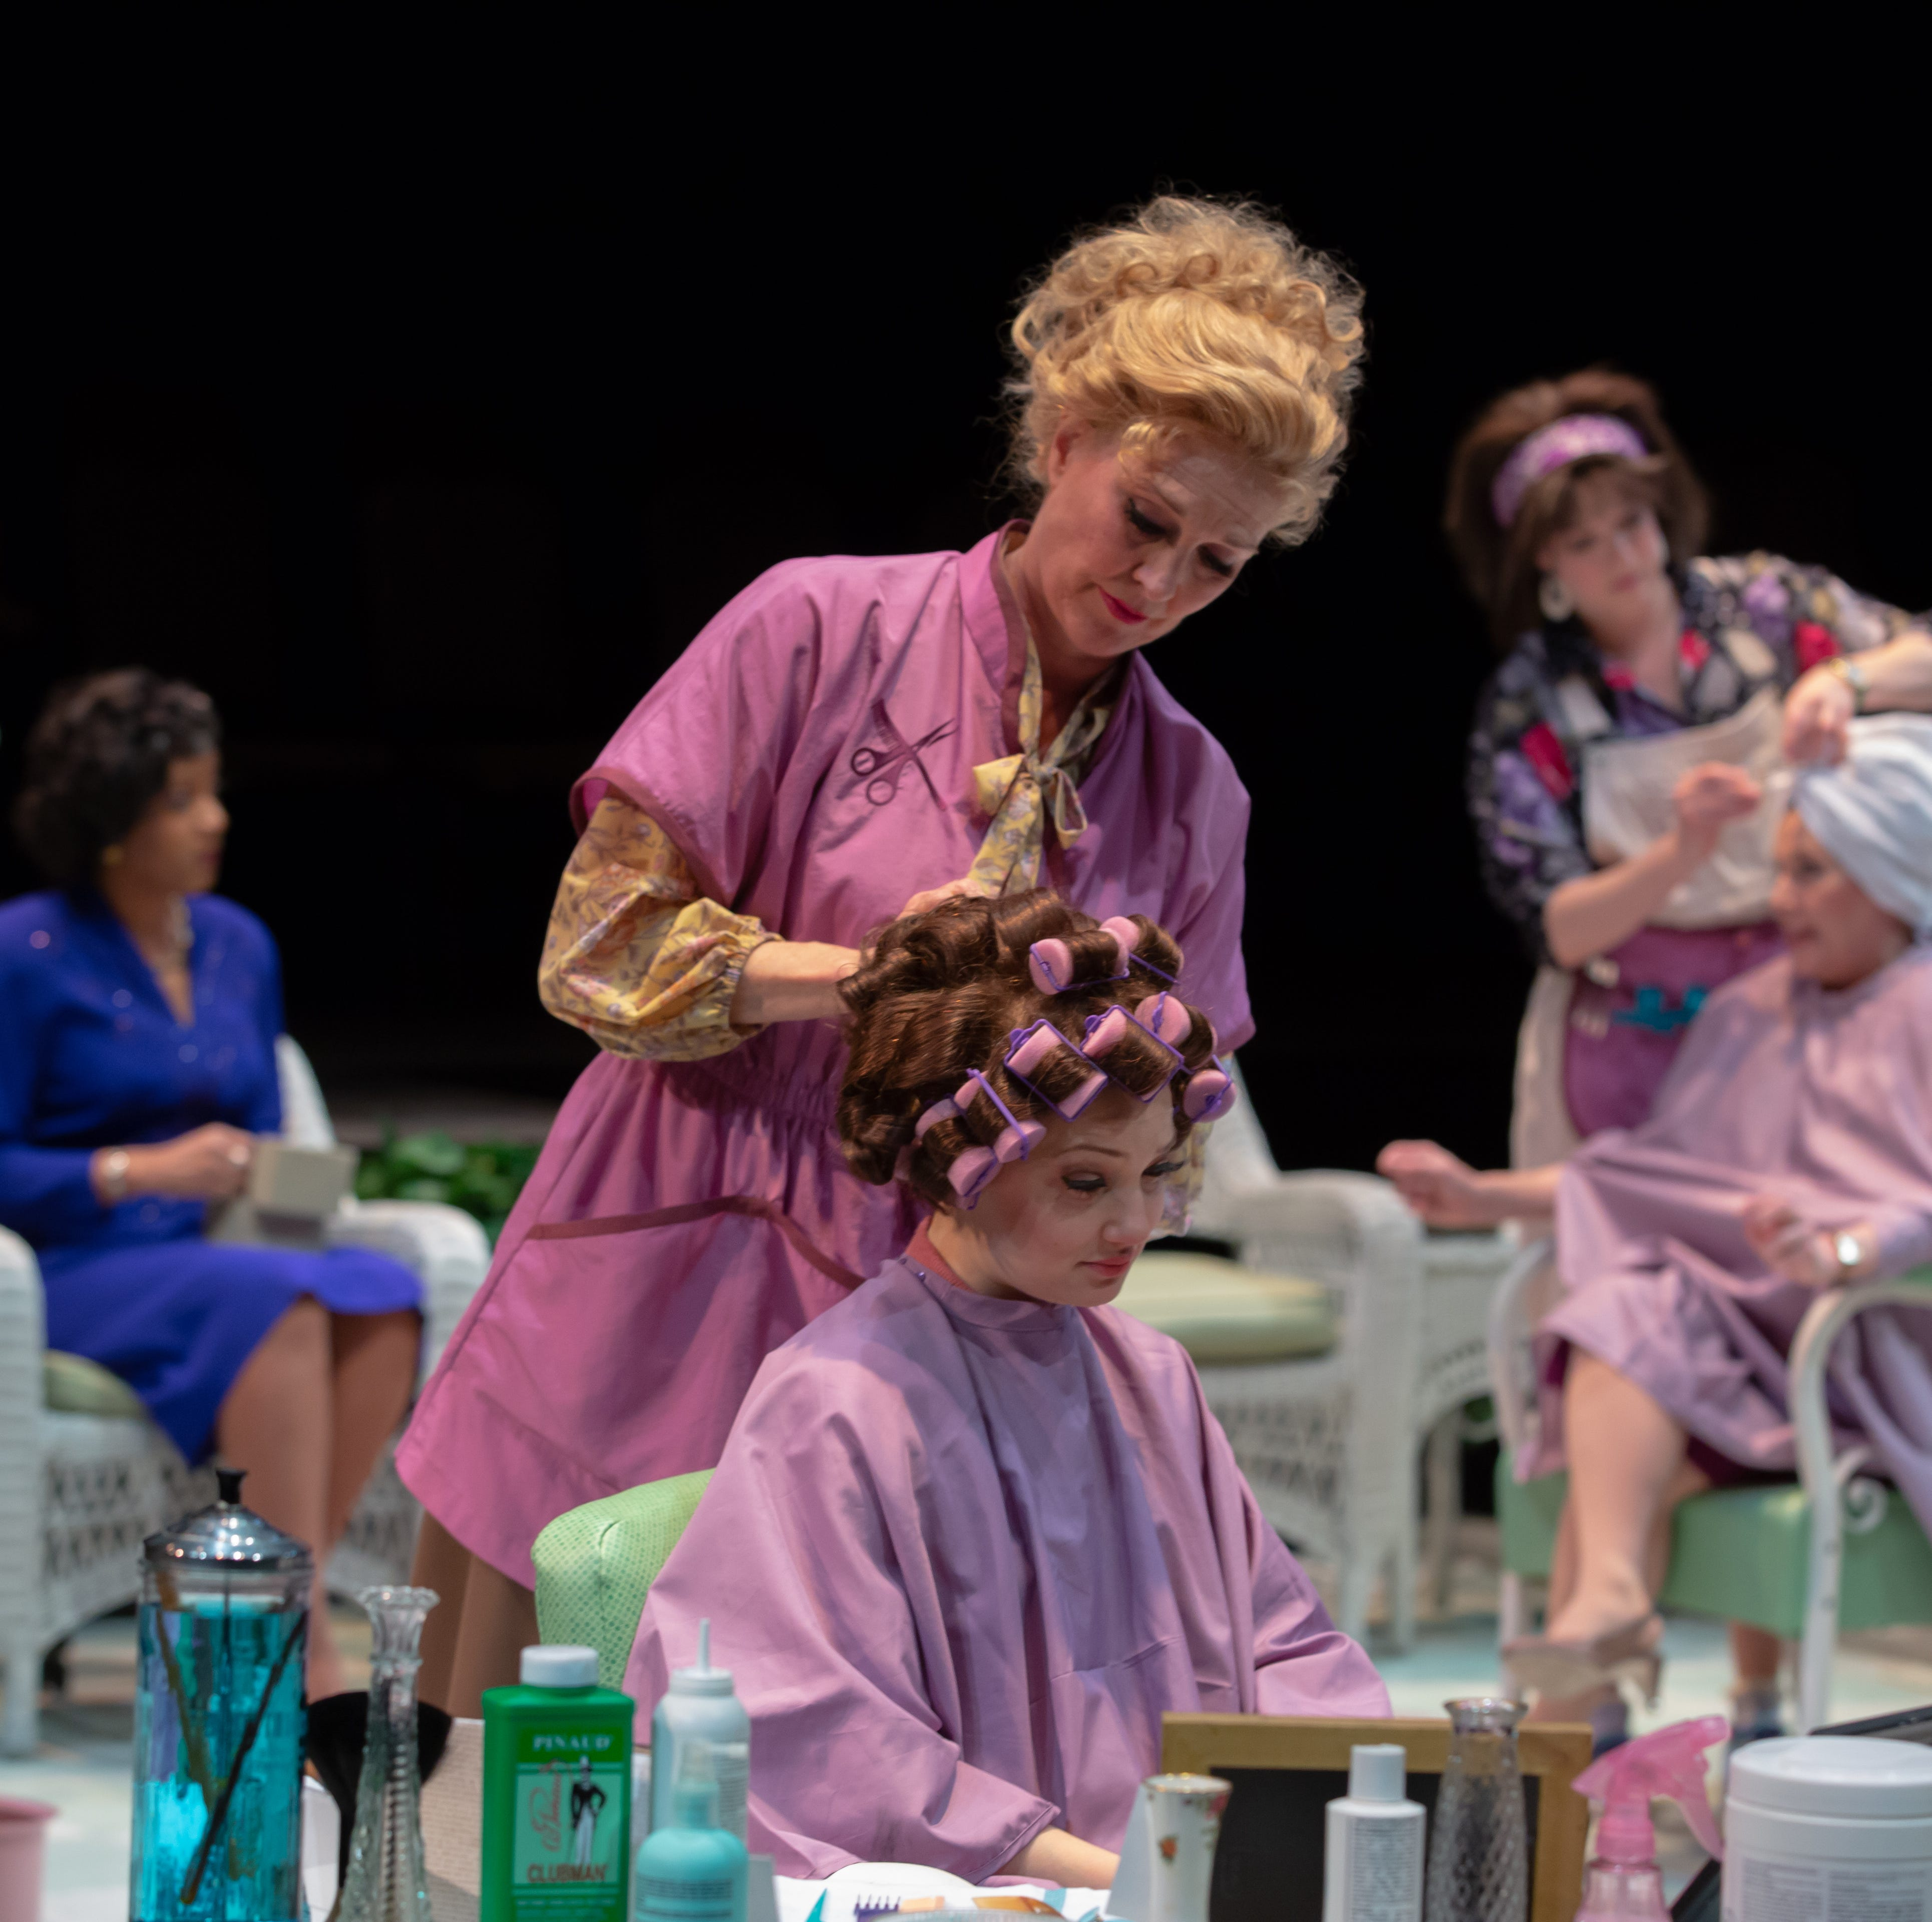 Review: ASF's 'Steel Magnolias' delivers humor, heartbreak, hope